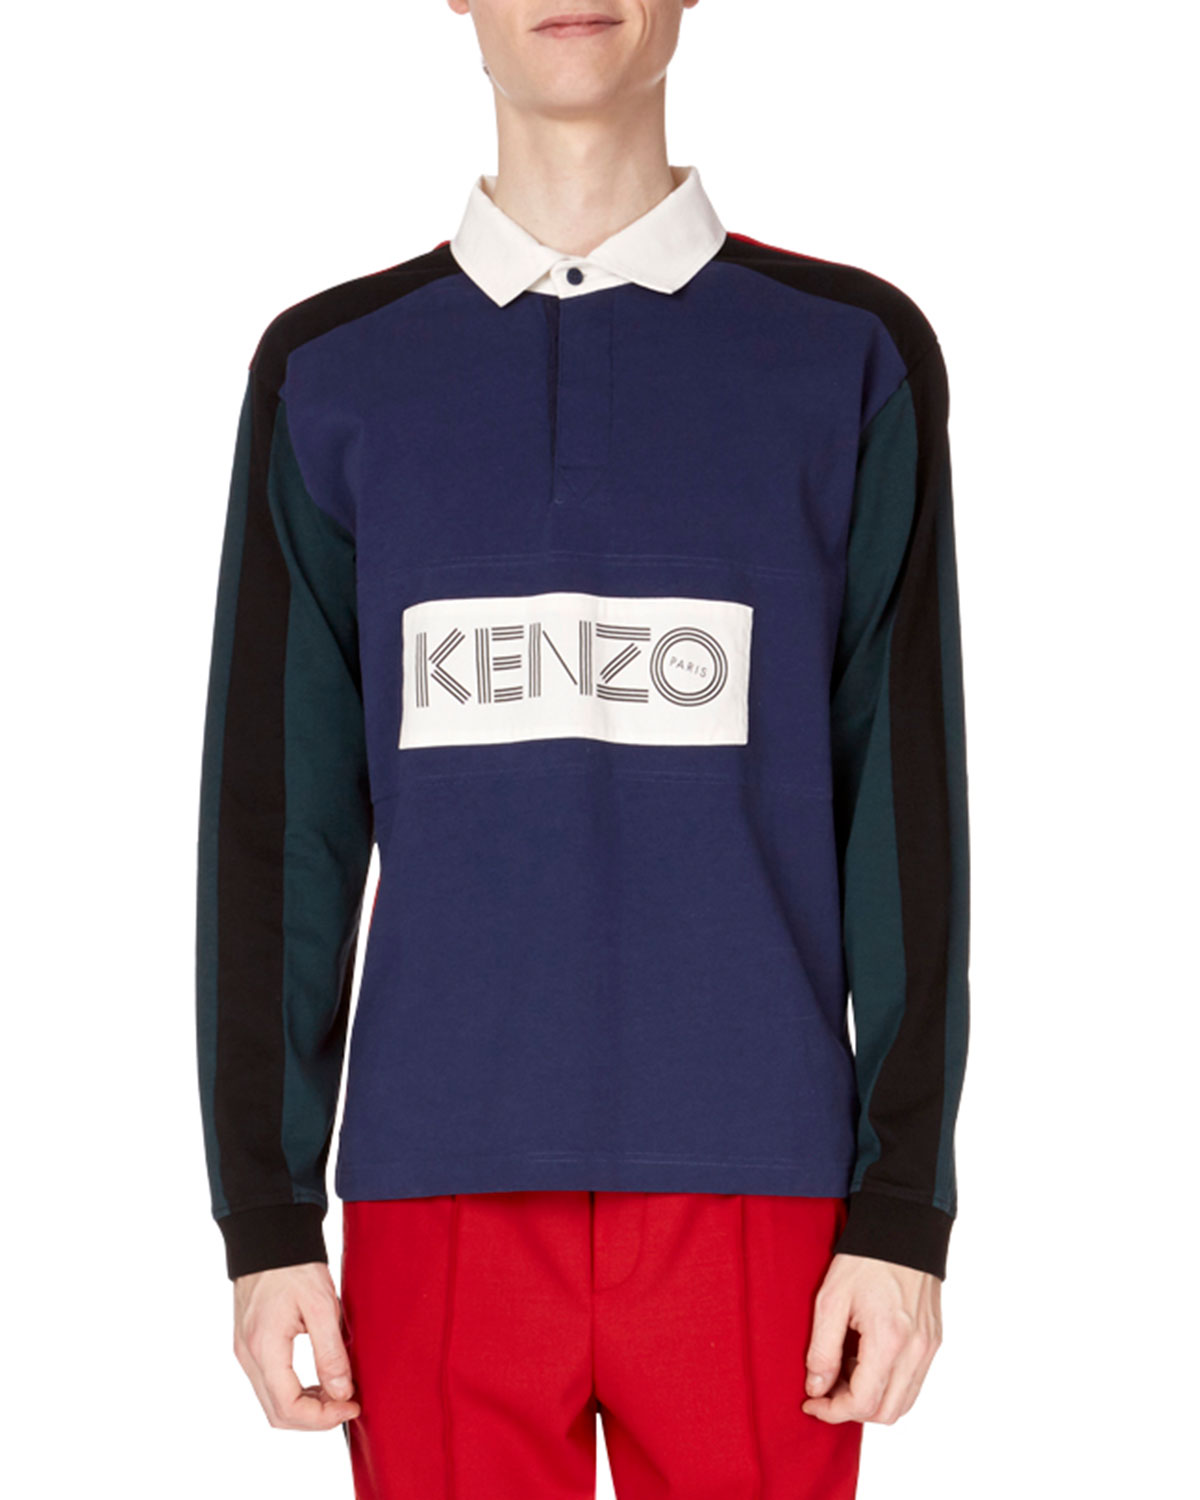 Kenzo Mens Colorblock Long Sleeve Rugby Polo Shirt Neiman Marcus